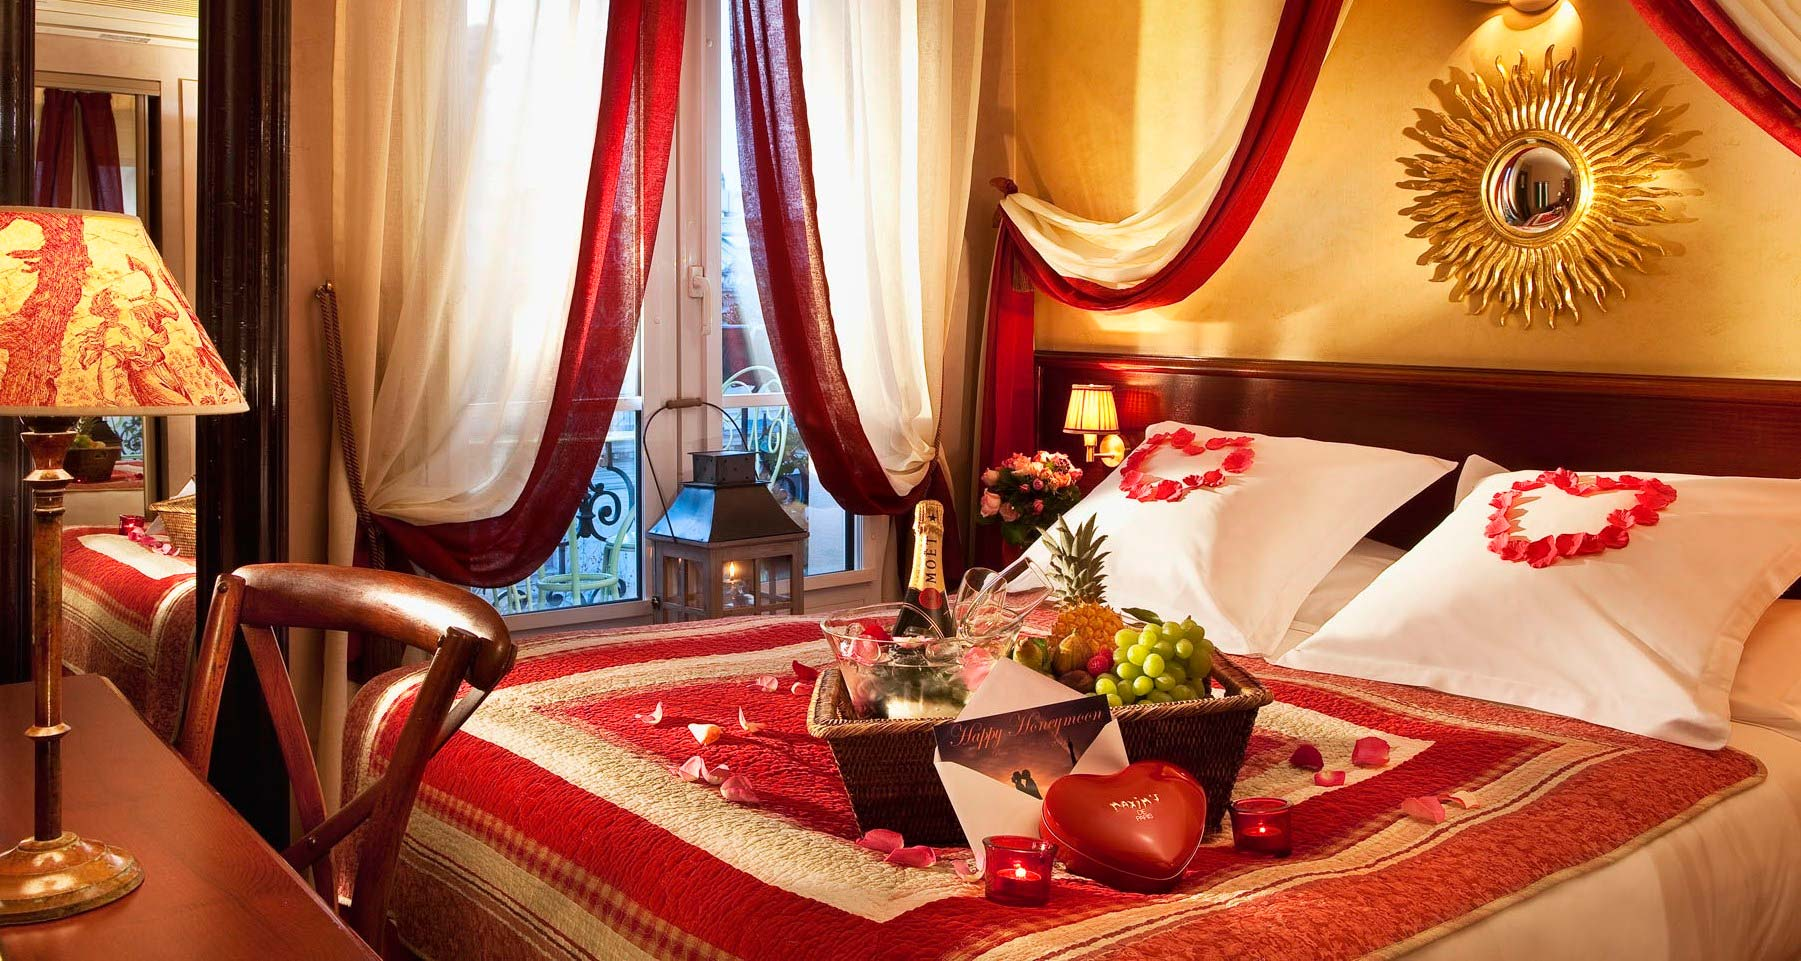 Romantic Honeymoon Suite Bedroom Design In Red White And Gold Color With Beautiful Bed Set With Red